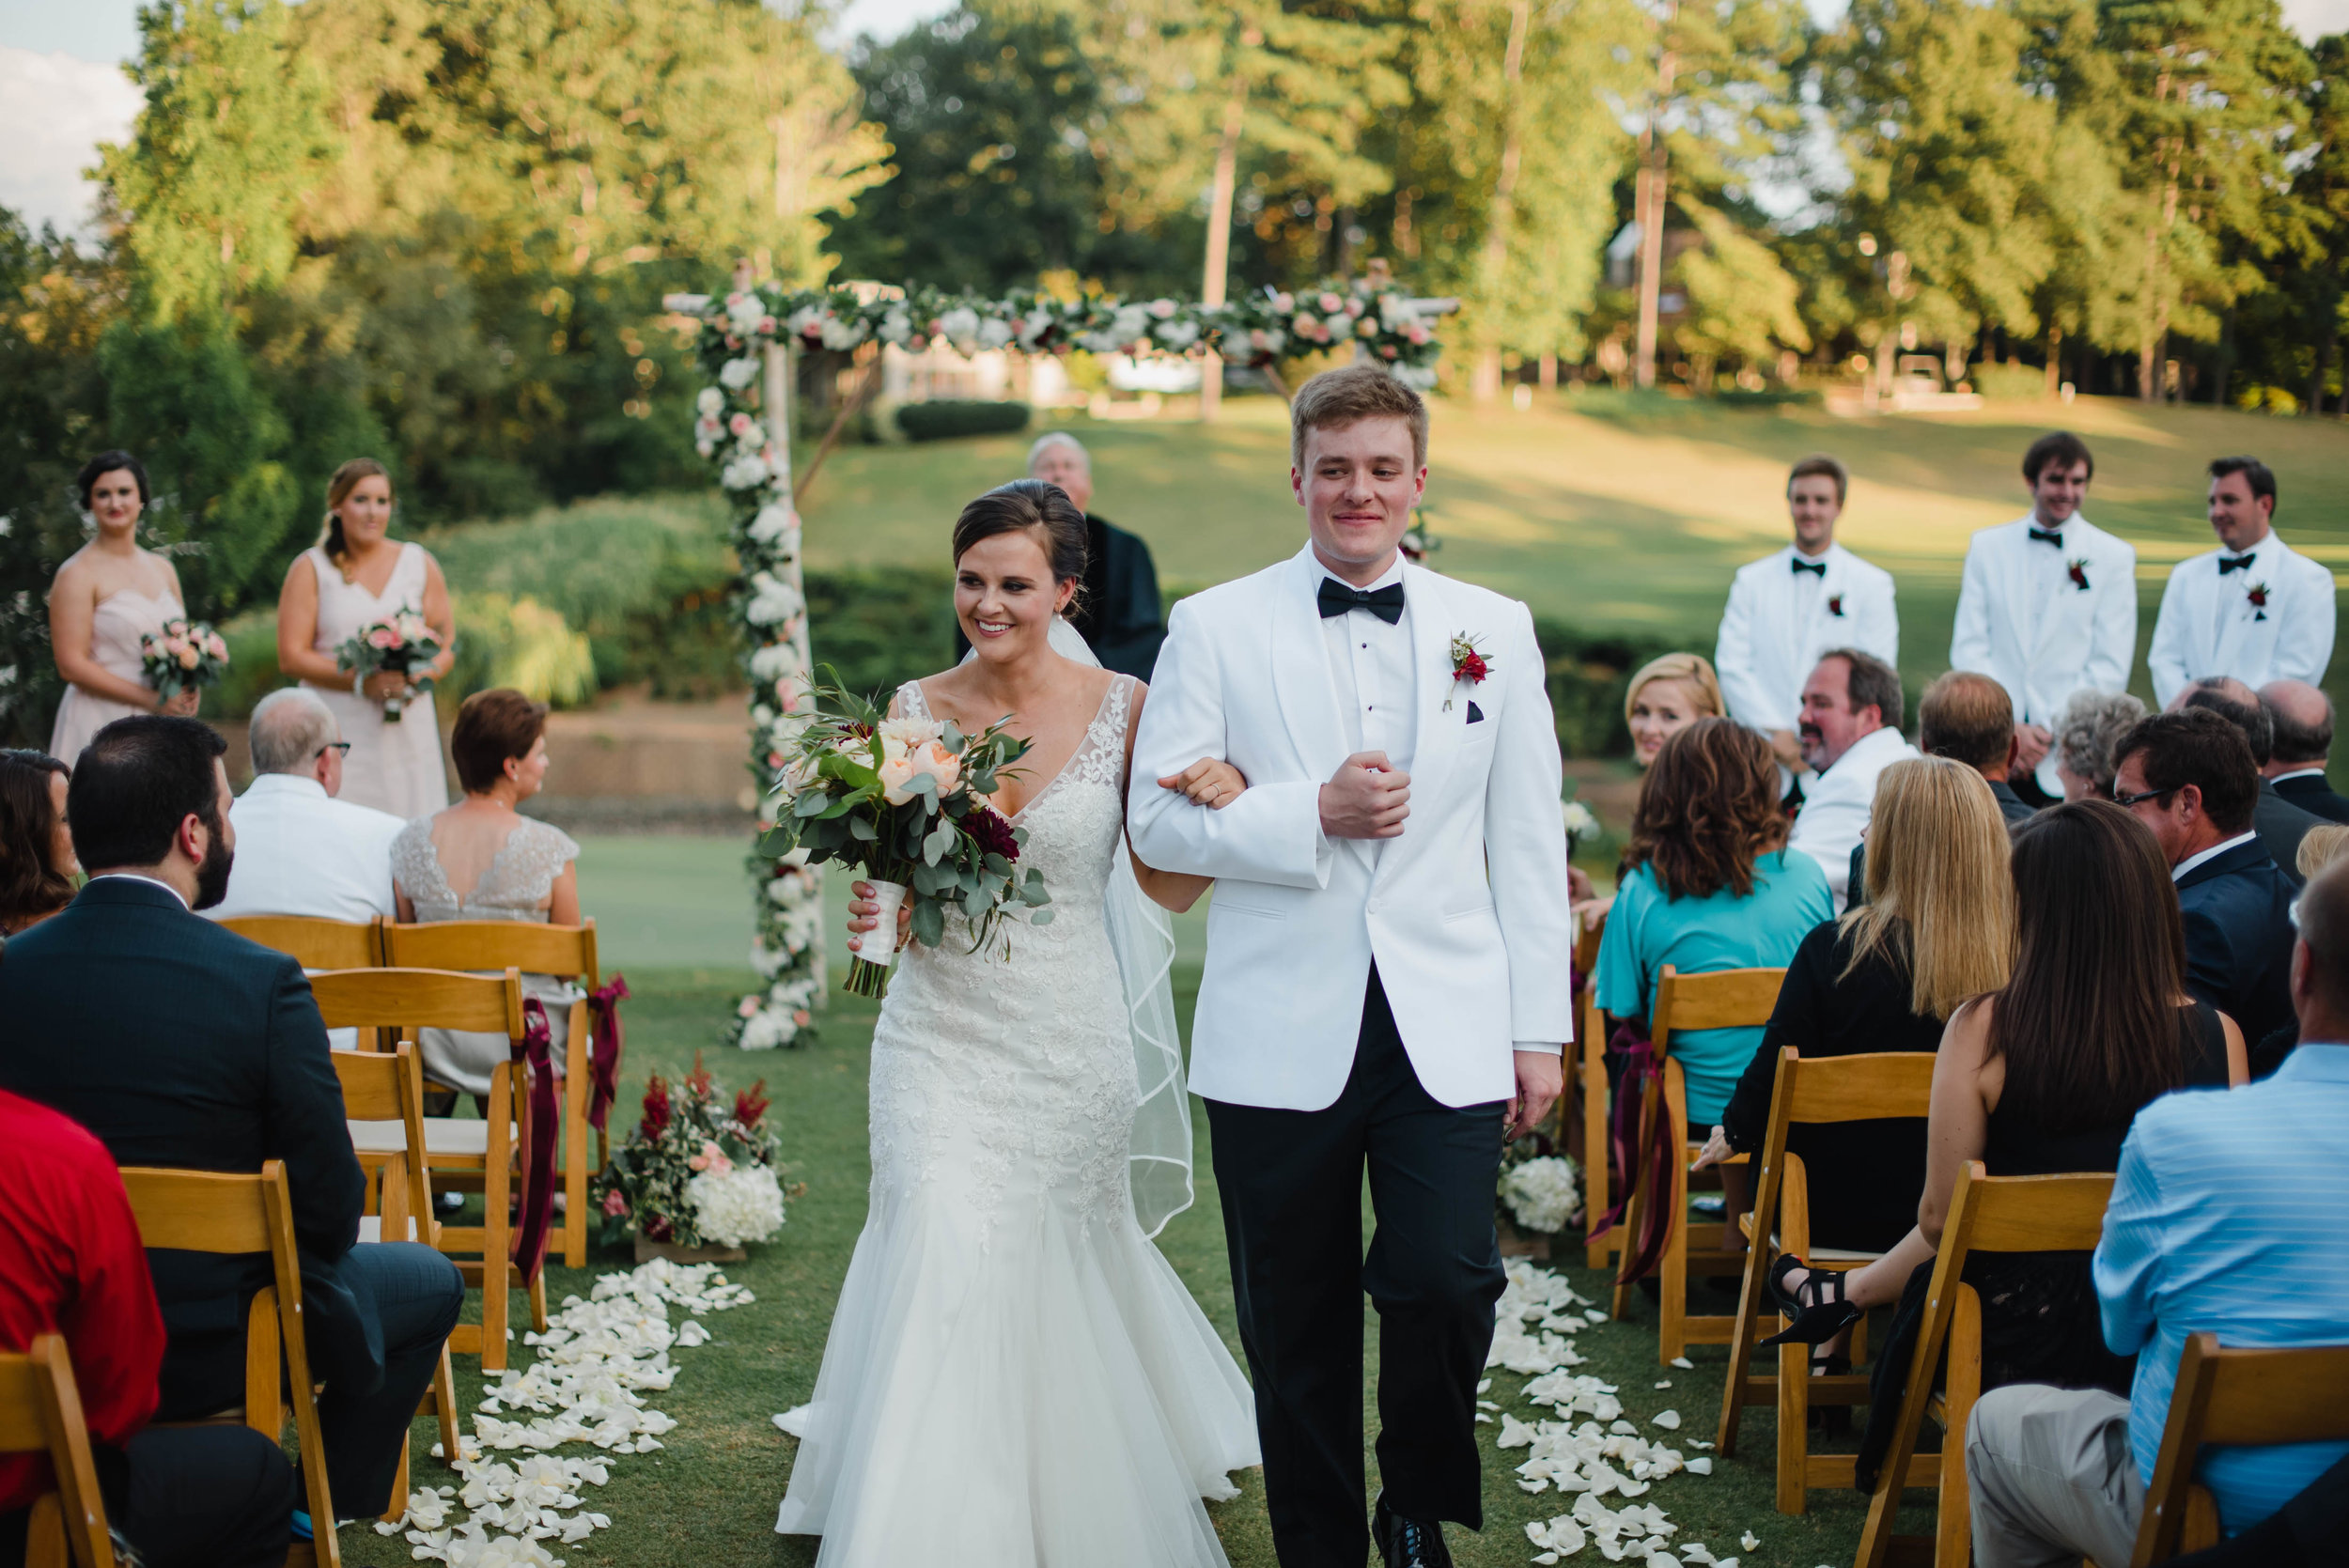 Rainbolt wedding-444.jpg